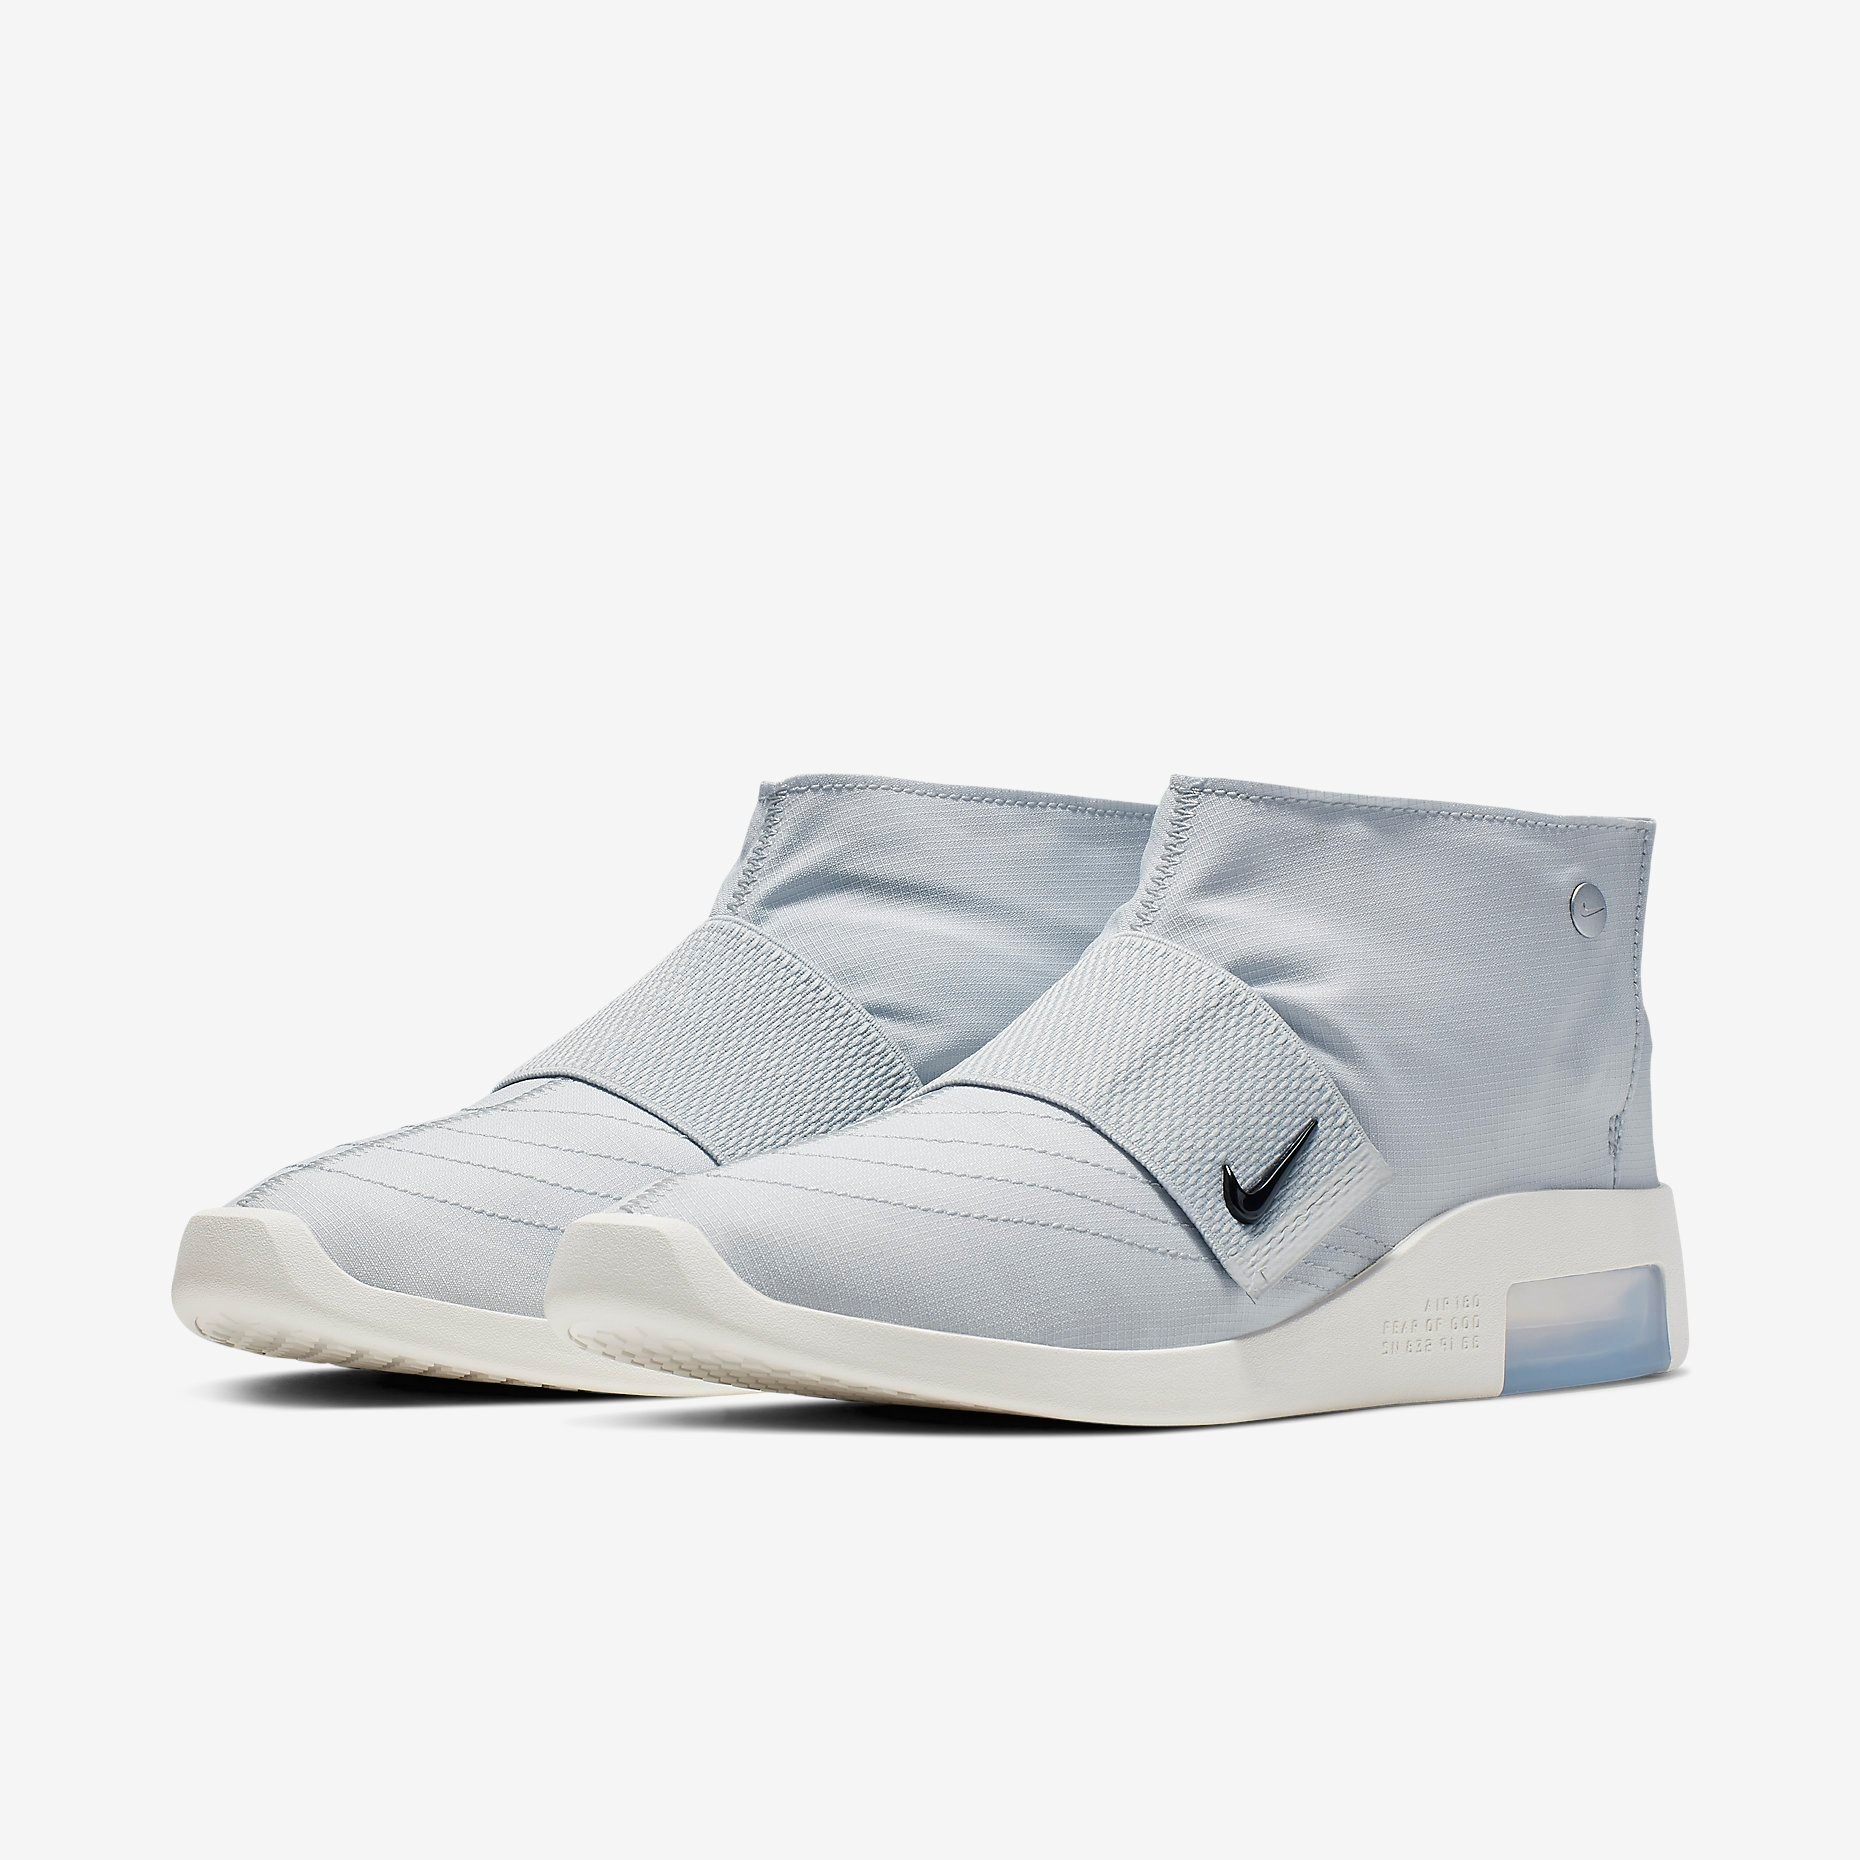 Fear of God x Nike Moccasin Pure Platinum 3